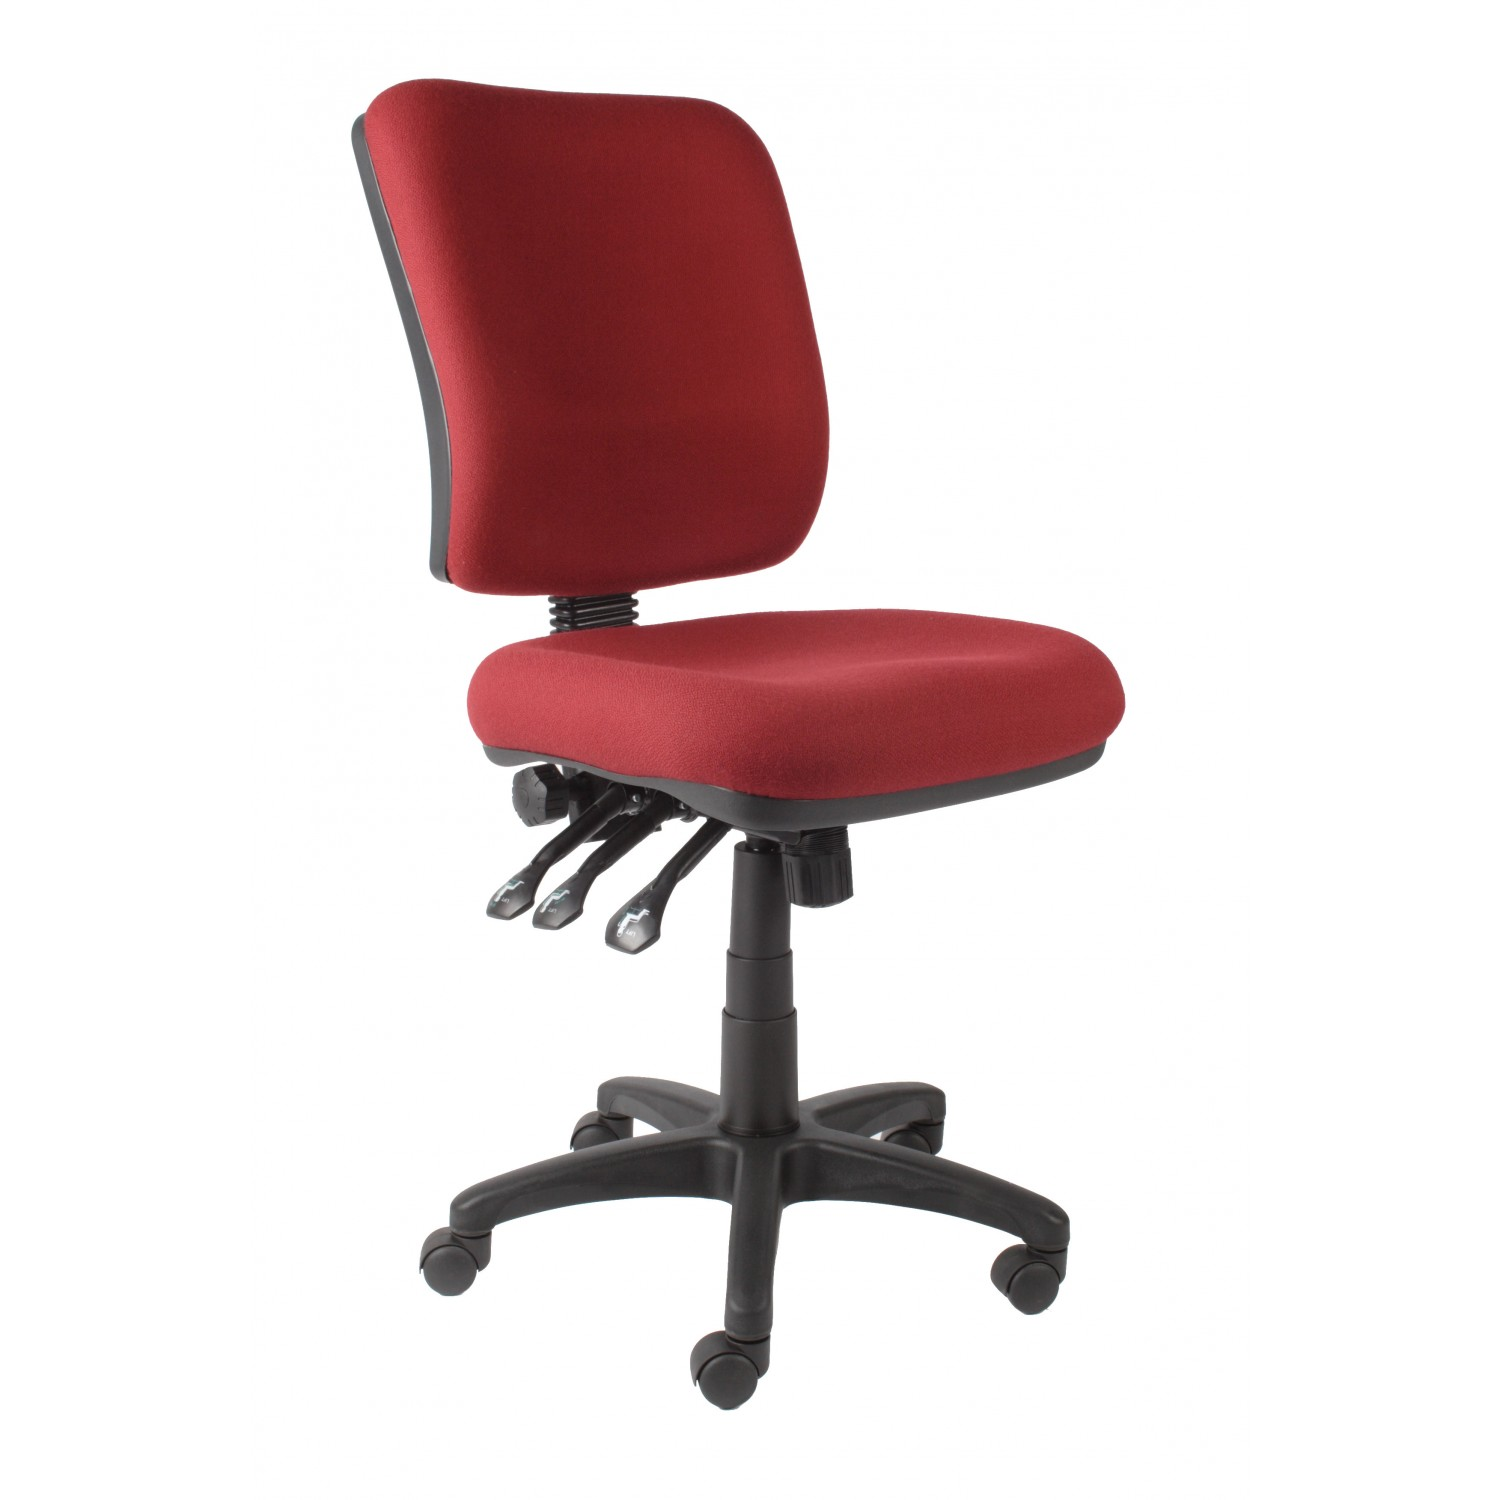 Heavy Duty Office Chair Heavy Duty Ergonomic Office Chair Office Furniture Since